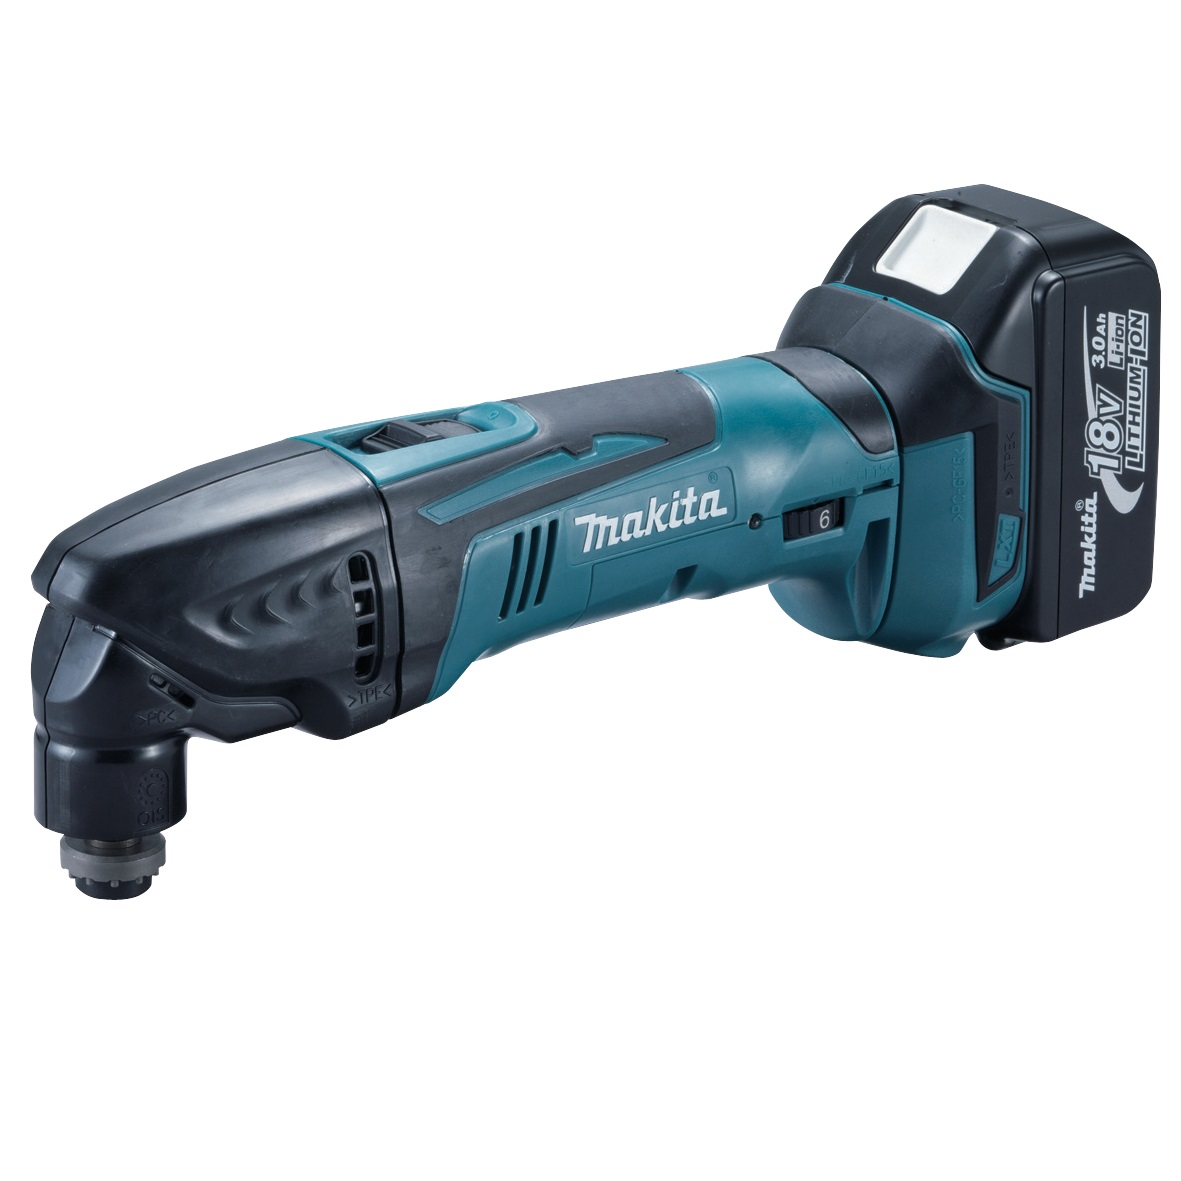 MAKITA BTM50RFX3 18V OSCILLATING MULTI TOOL WITH 1x3.0ah Li-ION BATTERY AND 30 ACCESSORIES